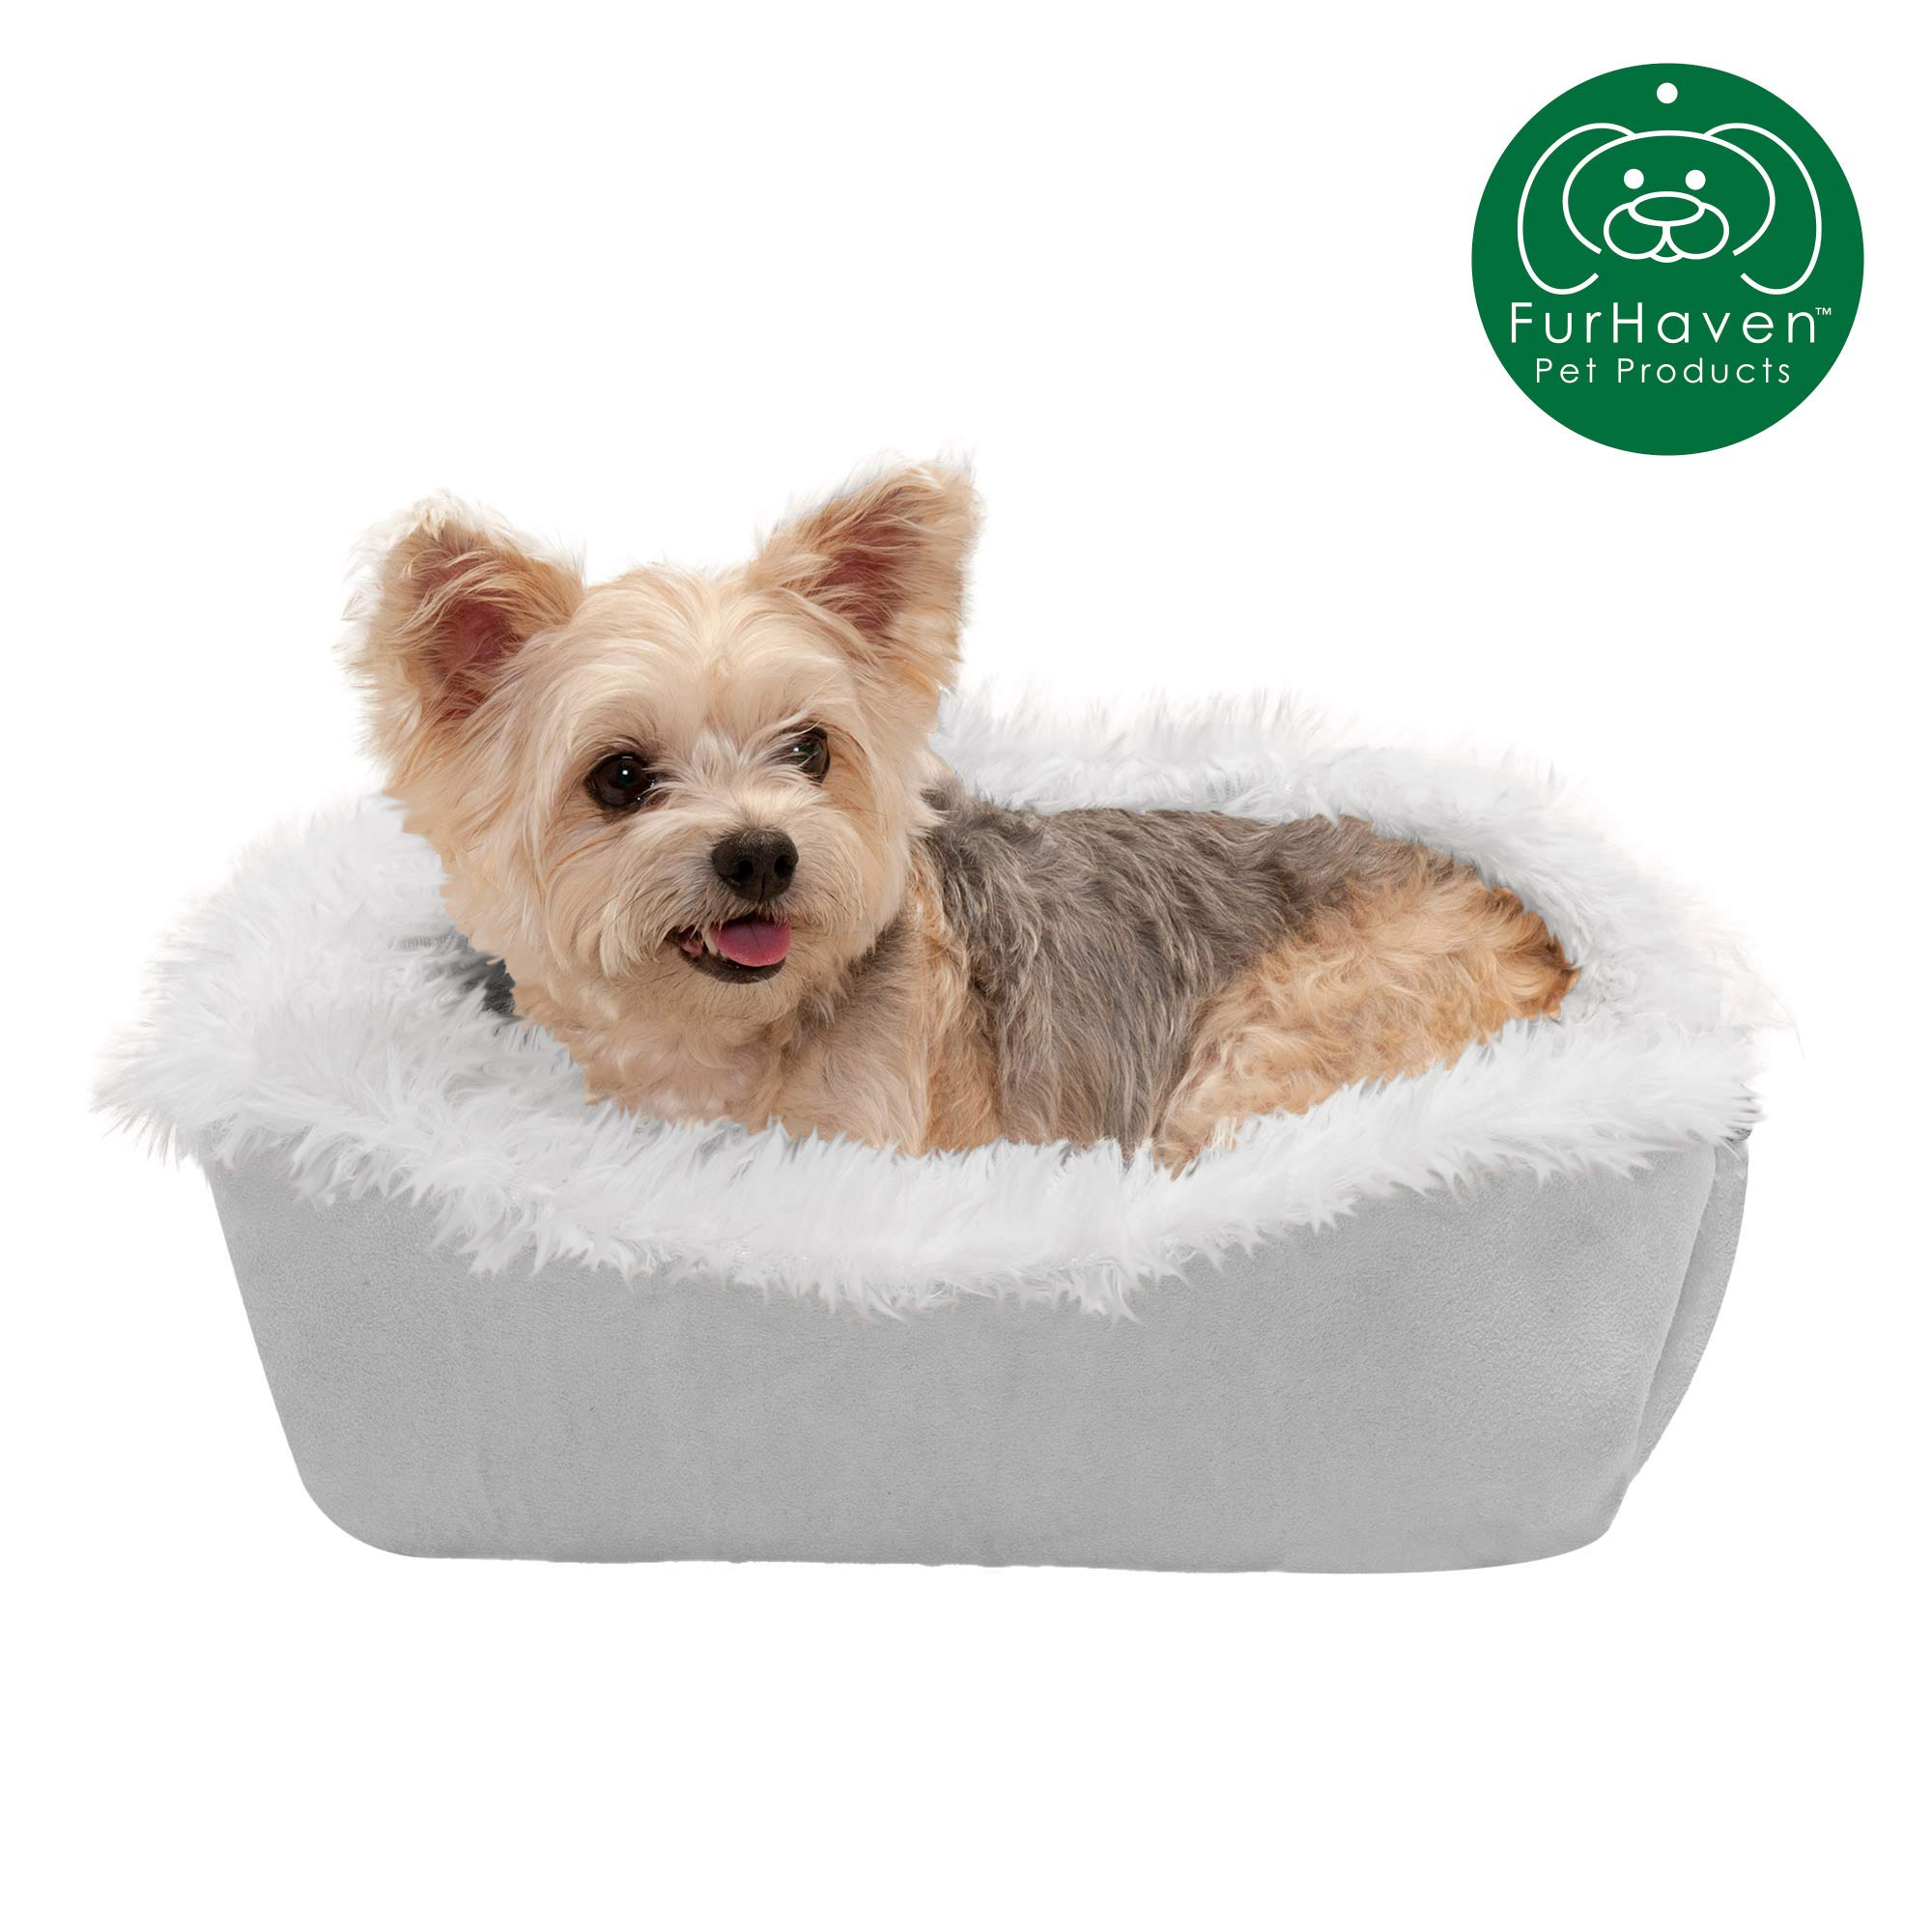 Furhaven Pet Dog Bed | Convertible Insulated Thermal Self-Warming Plush Faux Fur Cuddle Nest Lounger Pet Bed for Dogs & Cats, Silver, Small by Furhaven